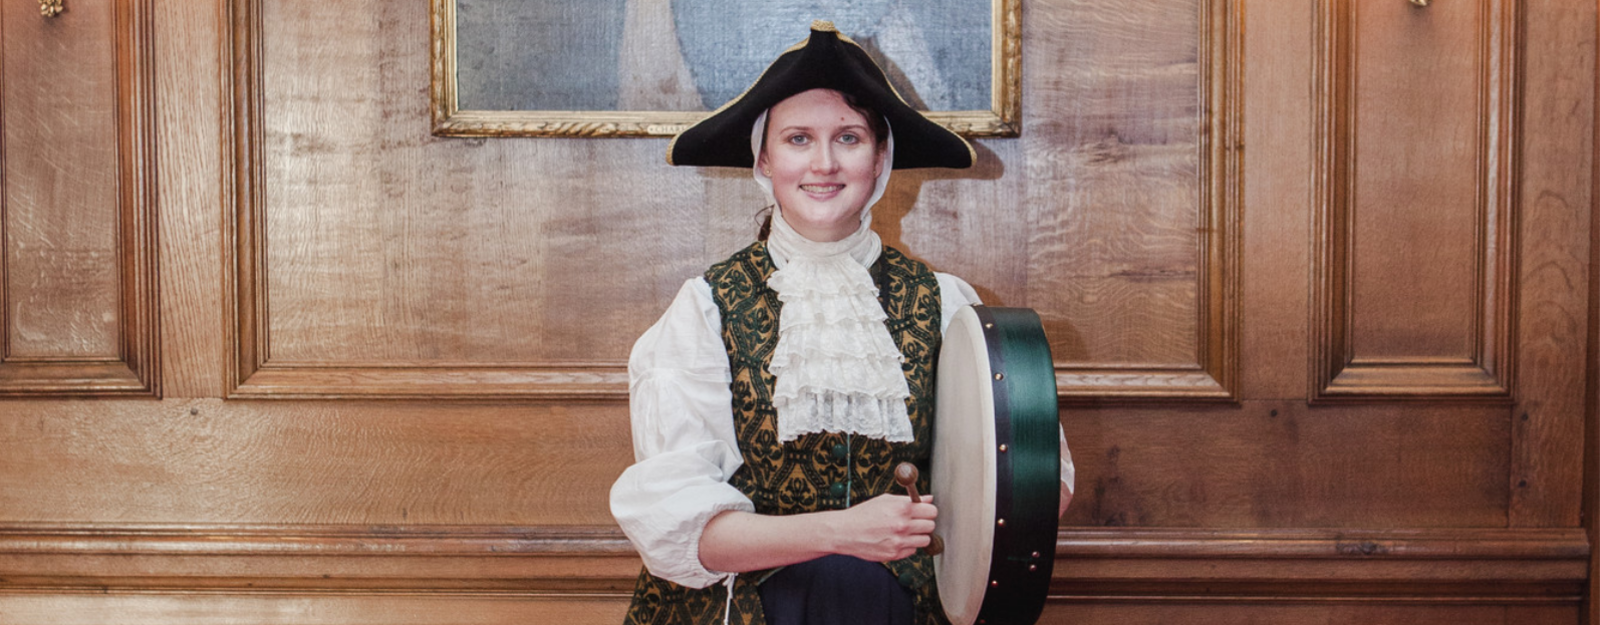 Musician in 18th Century costume